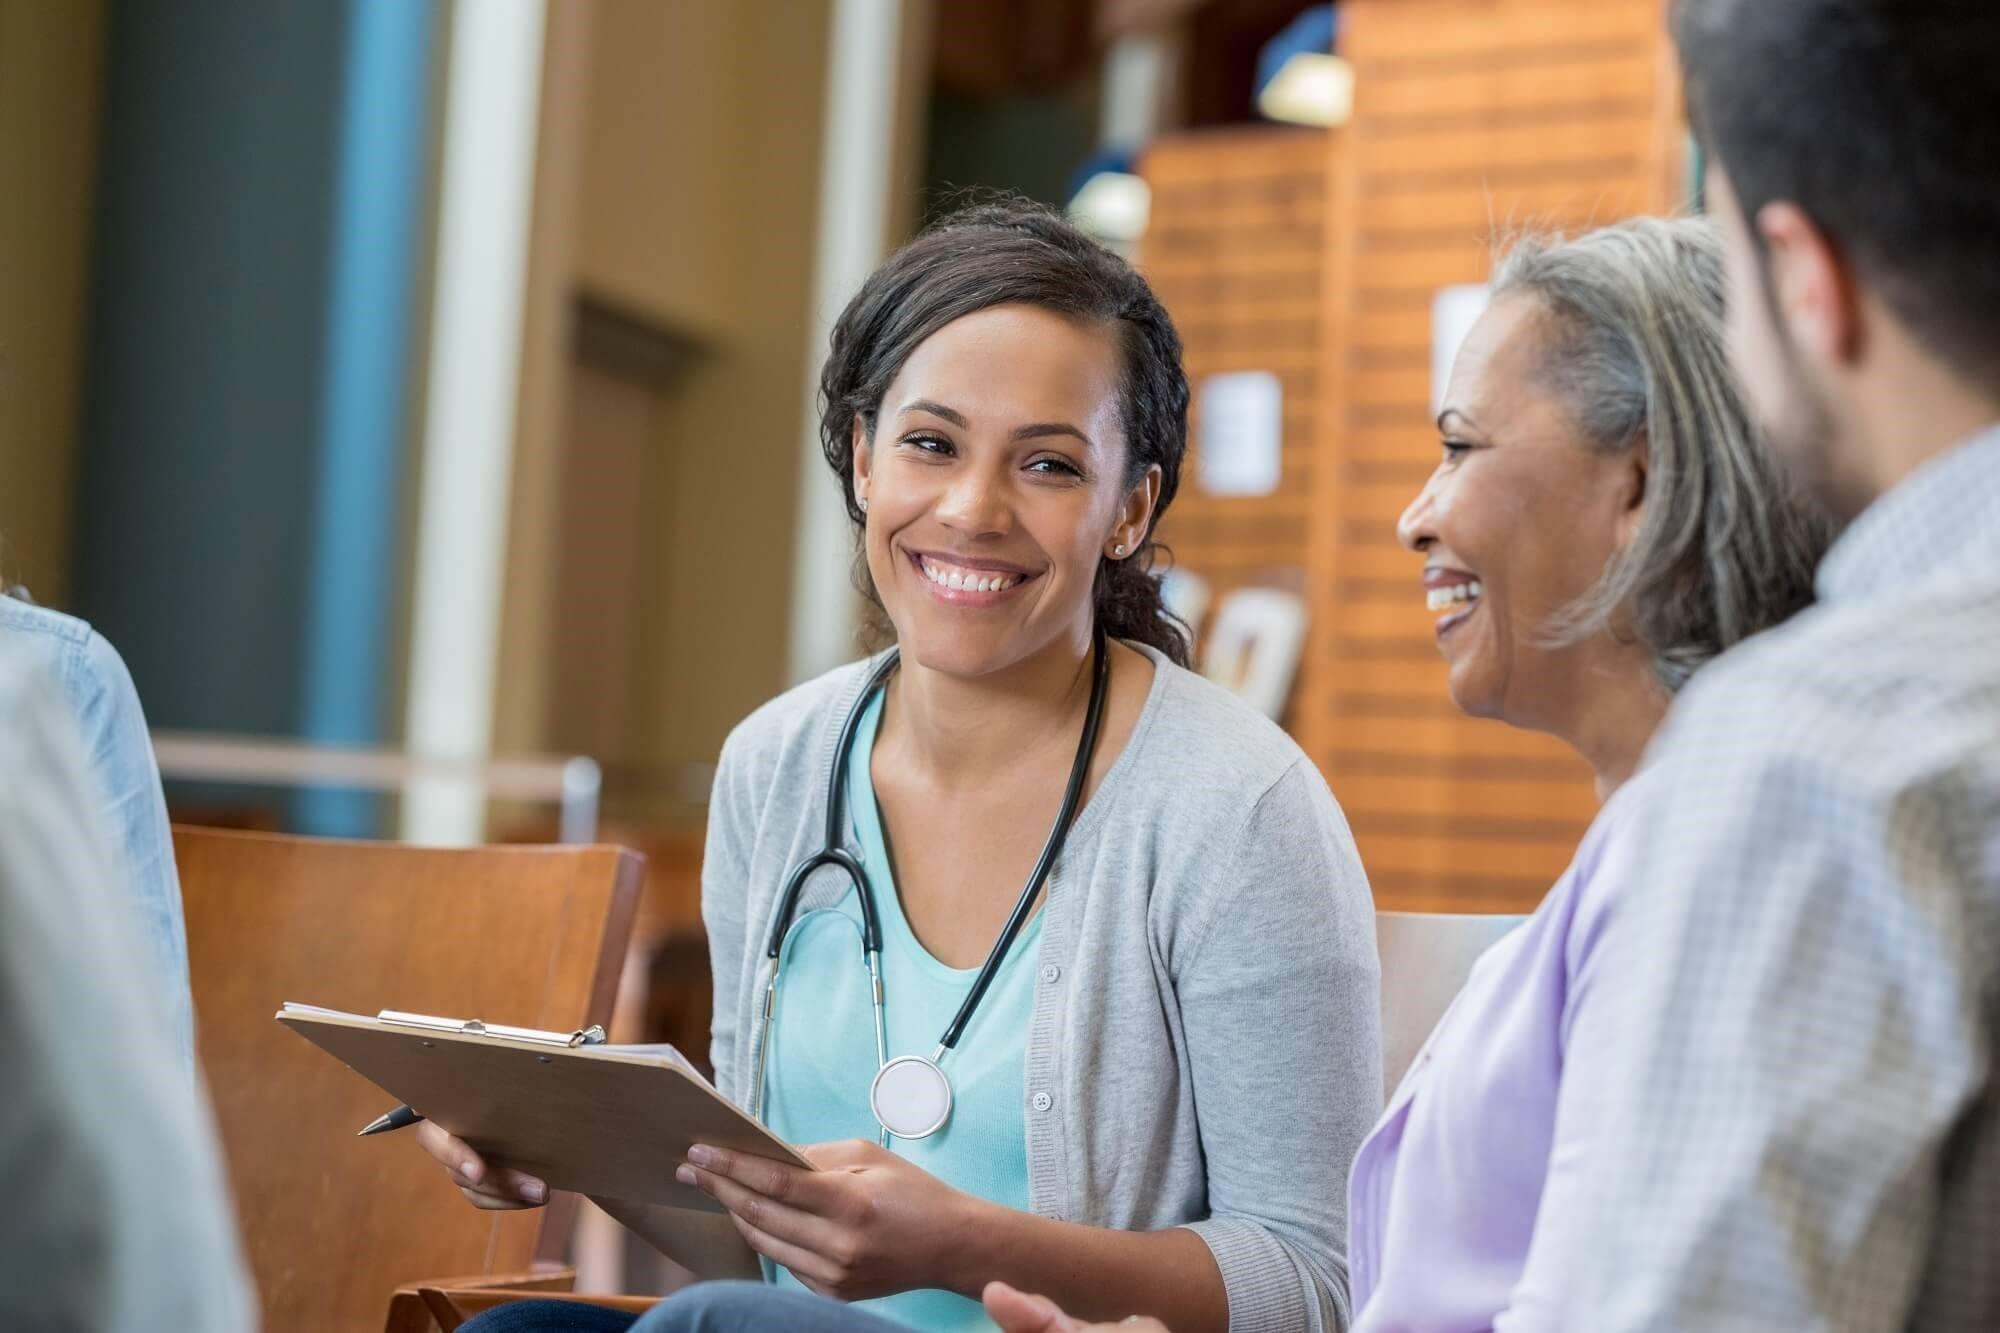 An educational intervention can improve patients' ability to self-manage their chronic diseases.